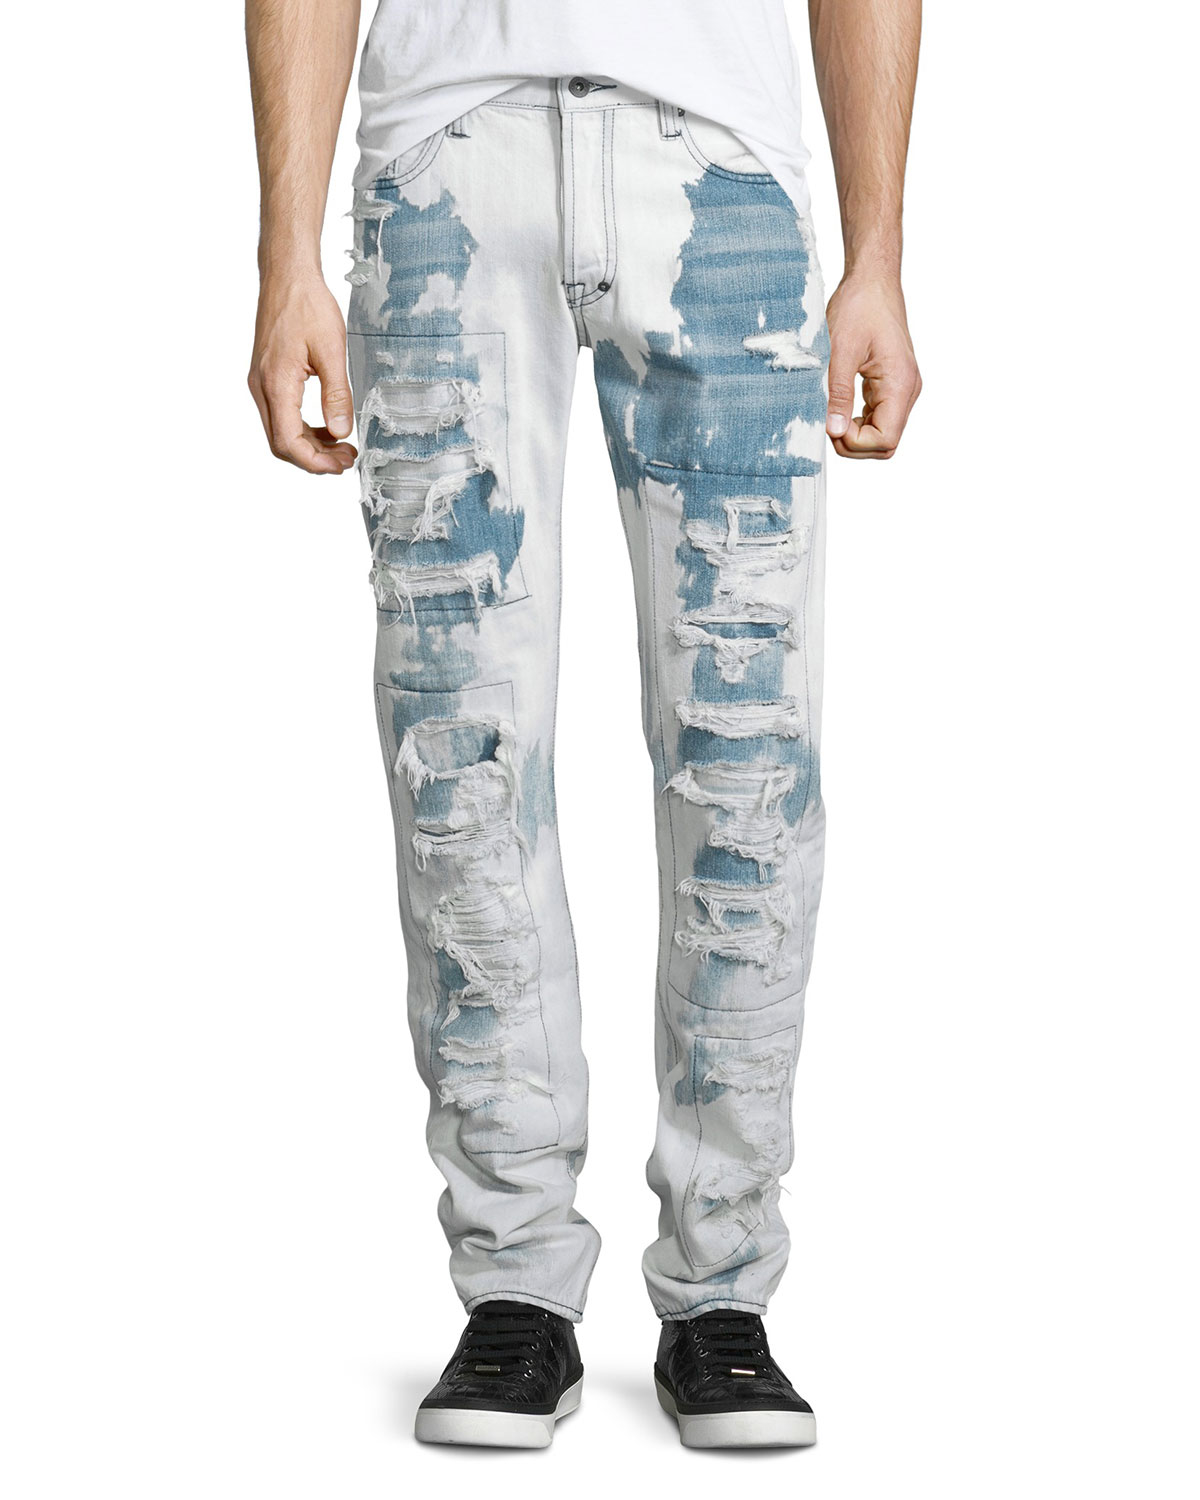 Bleached Jeans Decide on the right wash and pattern for your bleached jeans to find the look you love. Whether drawn to the big tie-dye pattern or the side-seam .